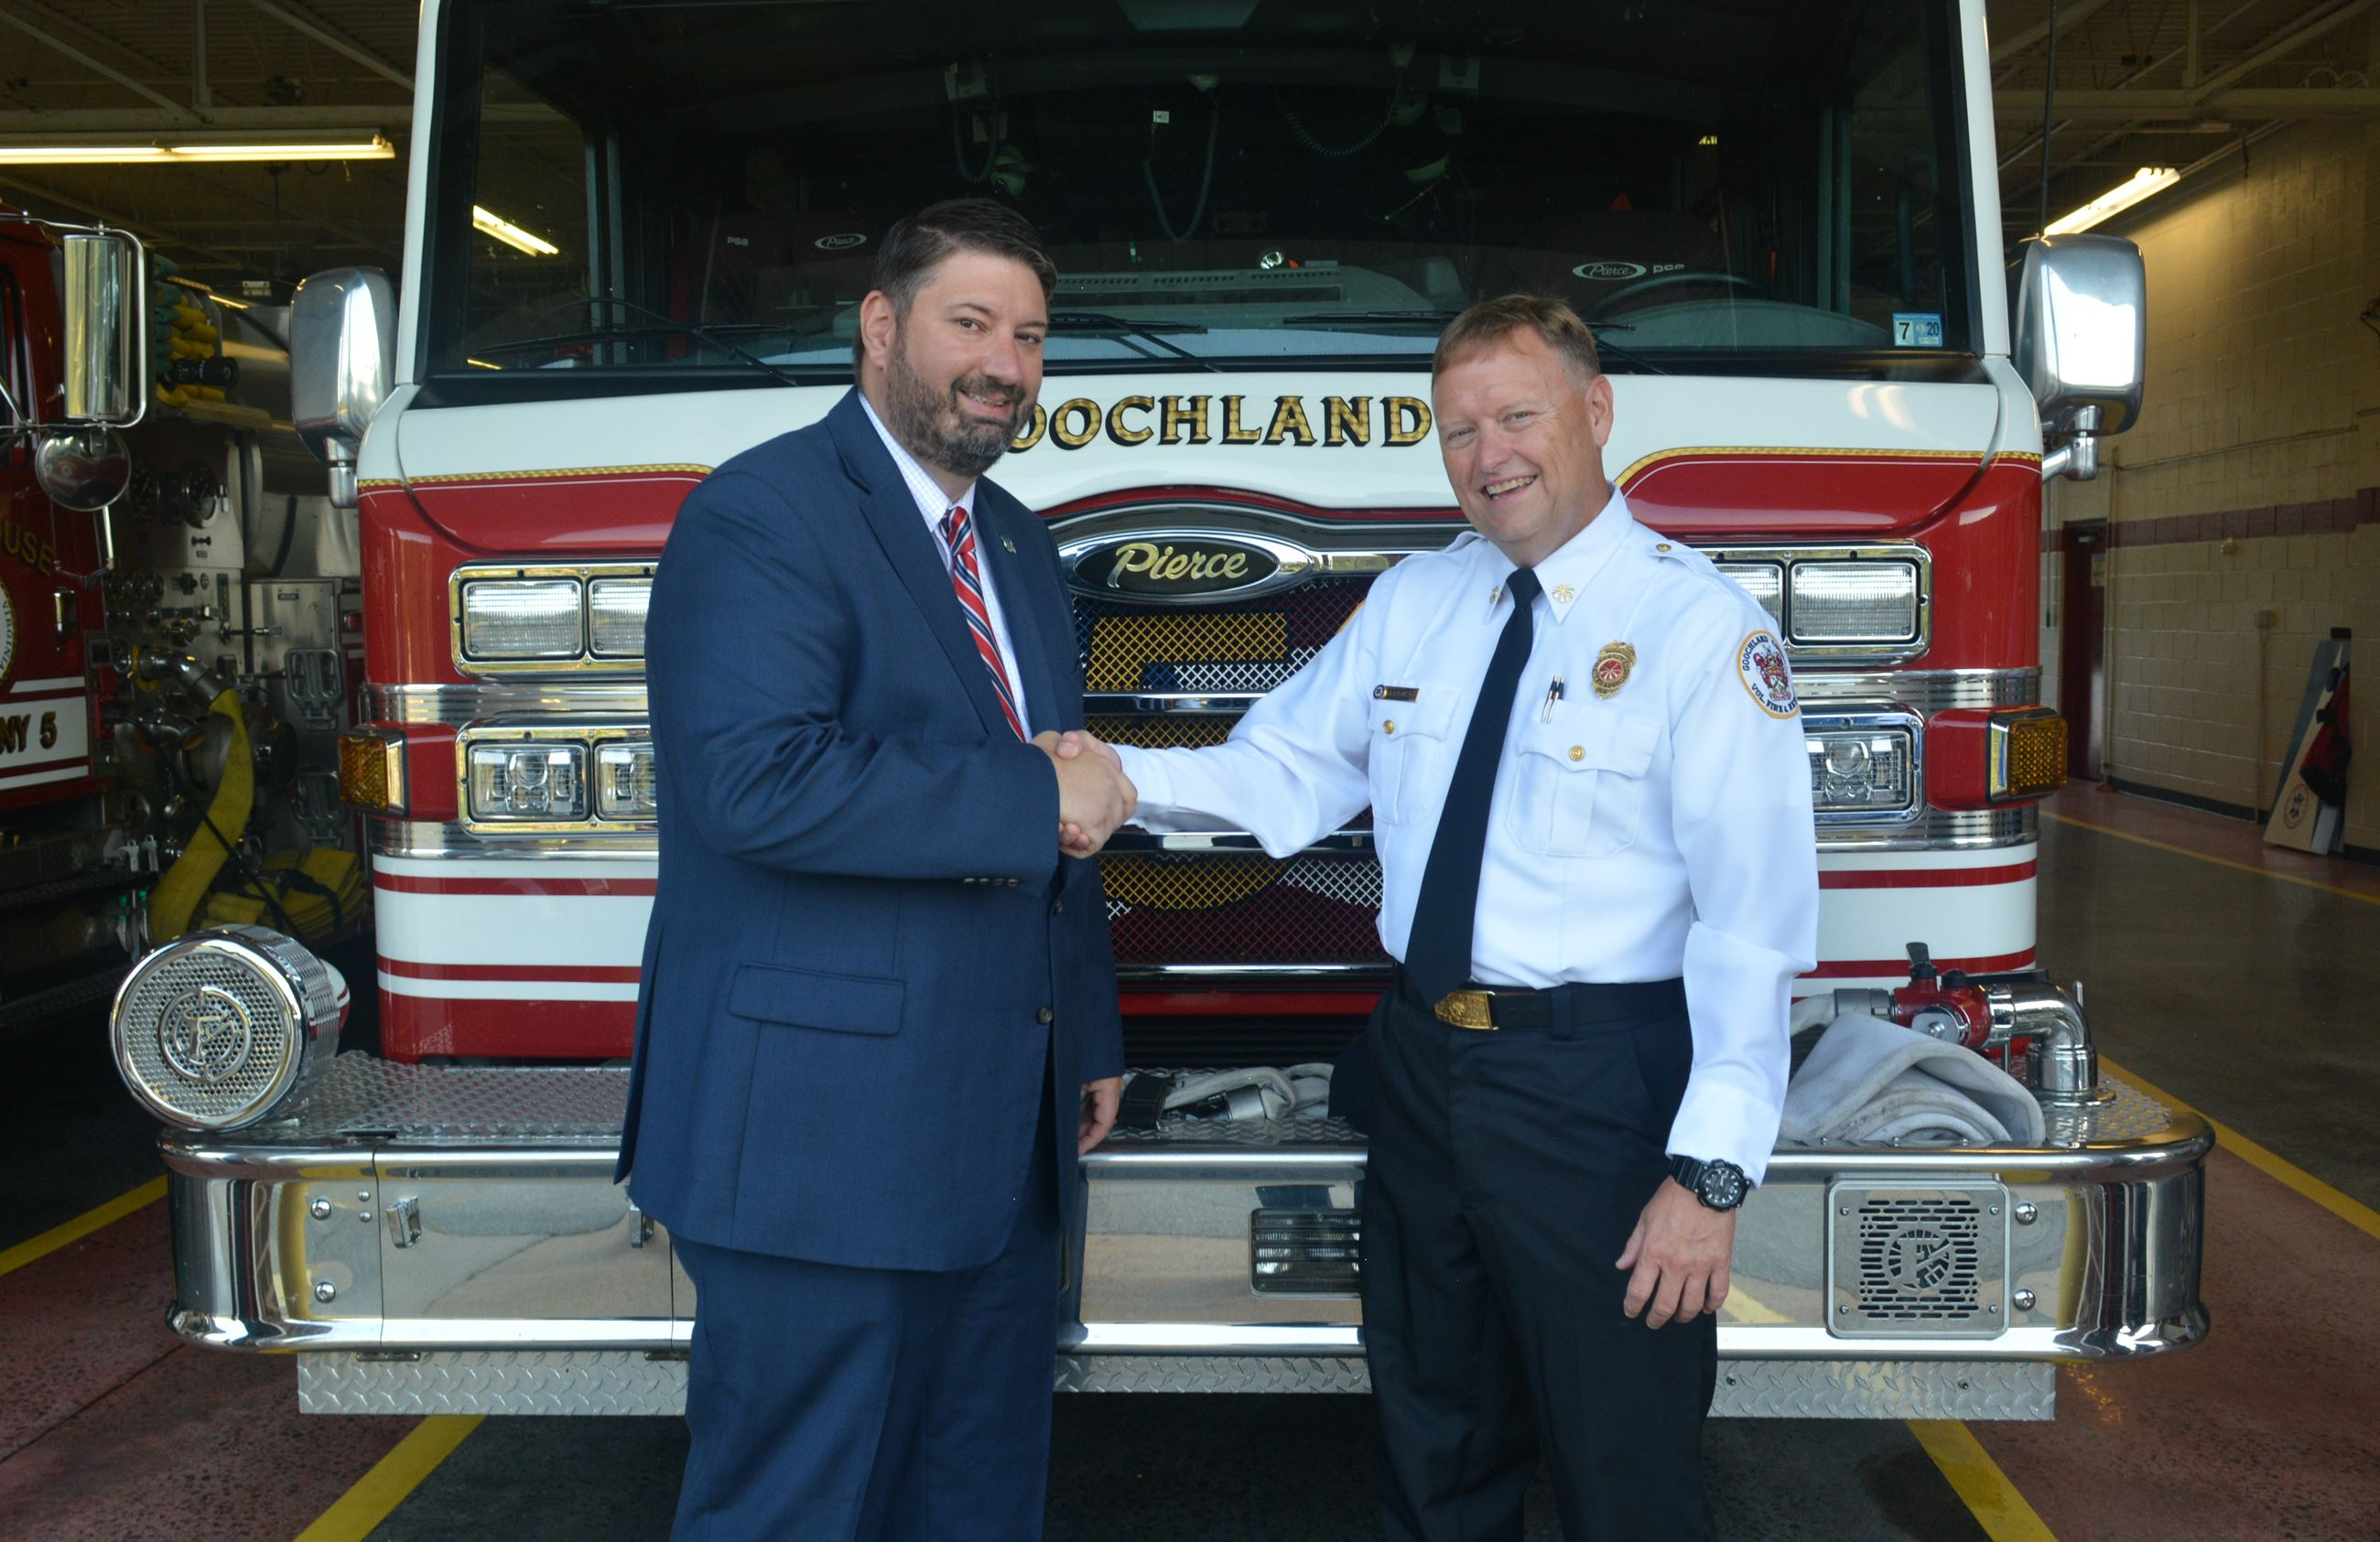 Goochland County - Chief Ferguson and County Administrator Budesky - DSC_0312